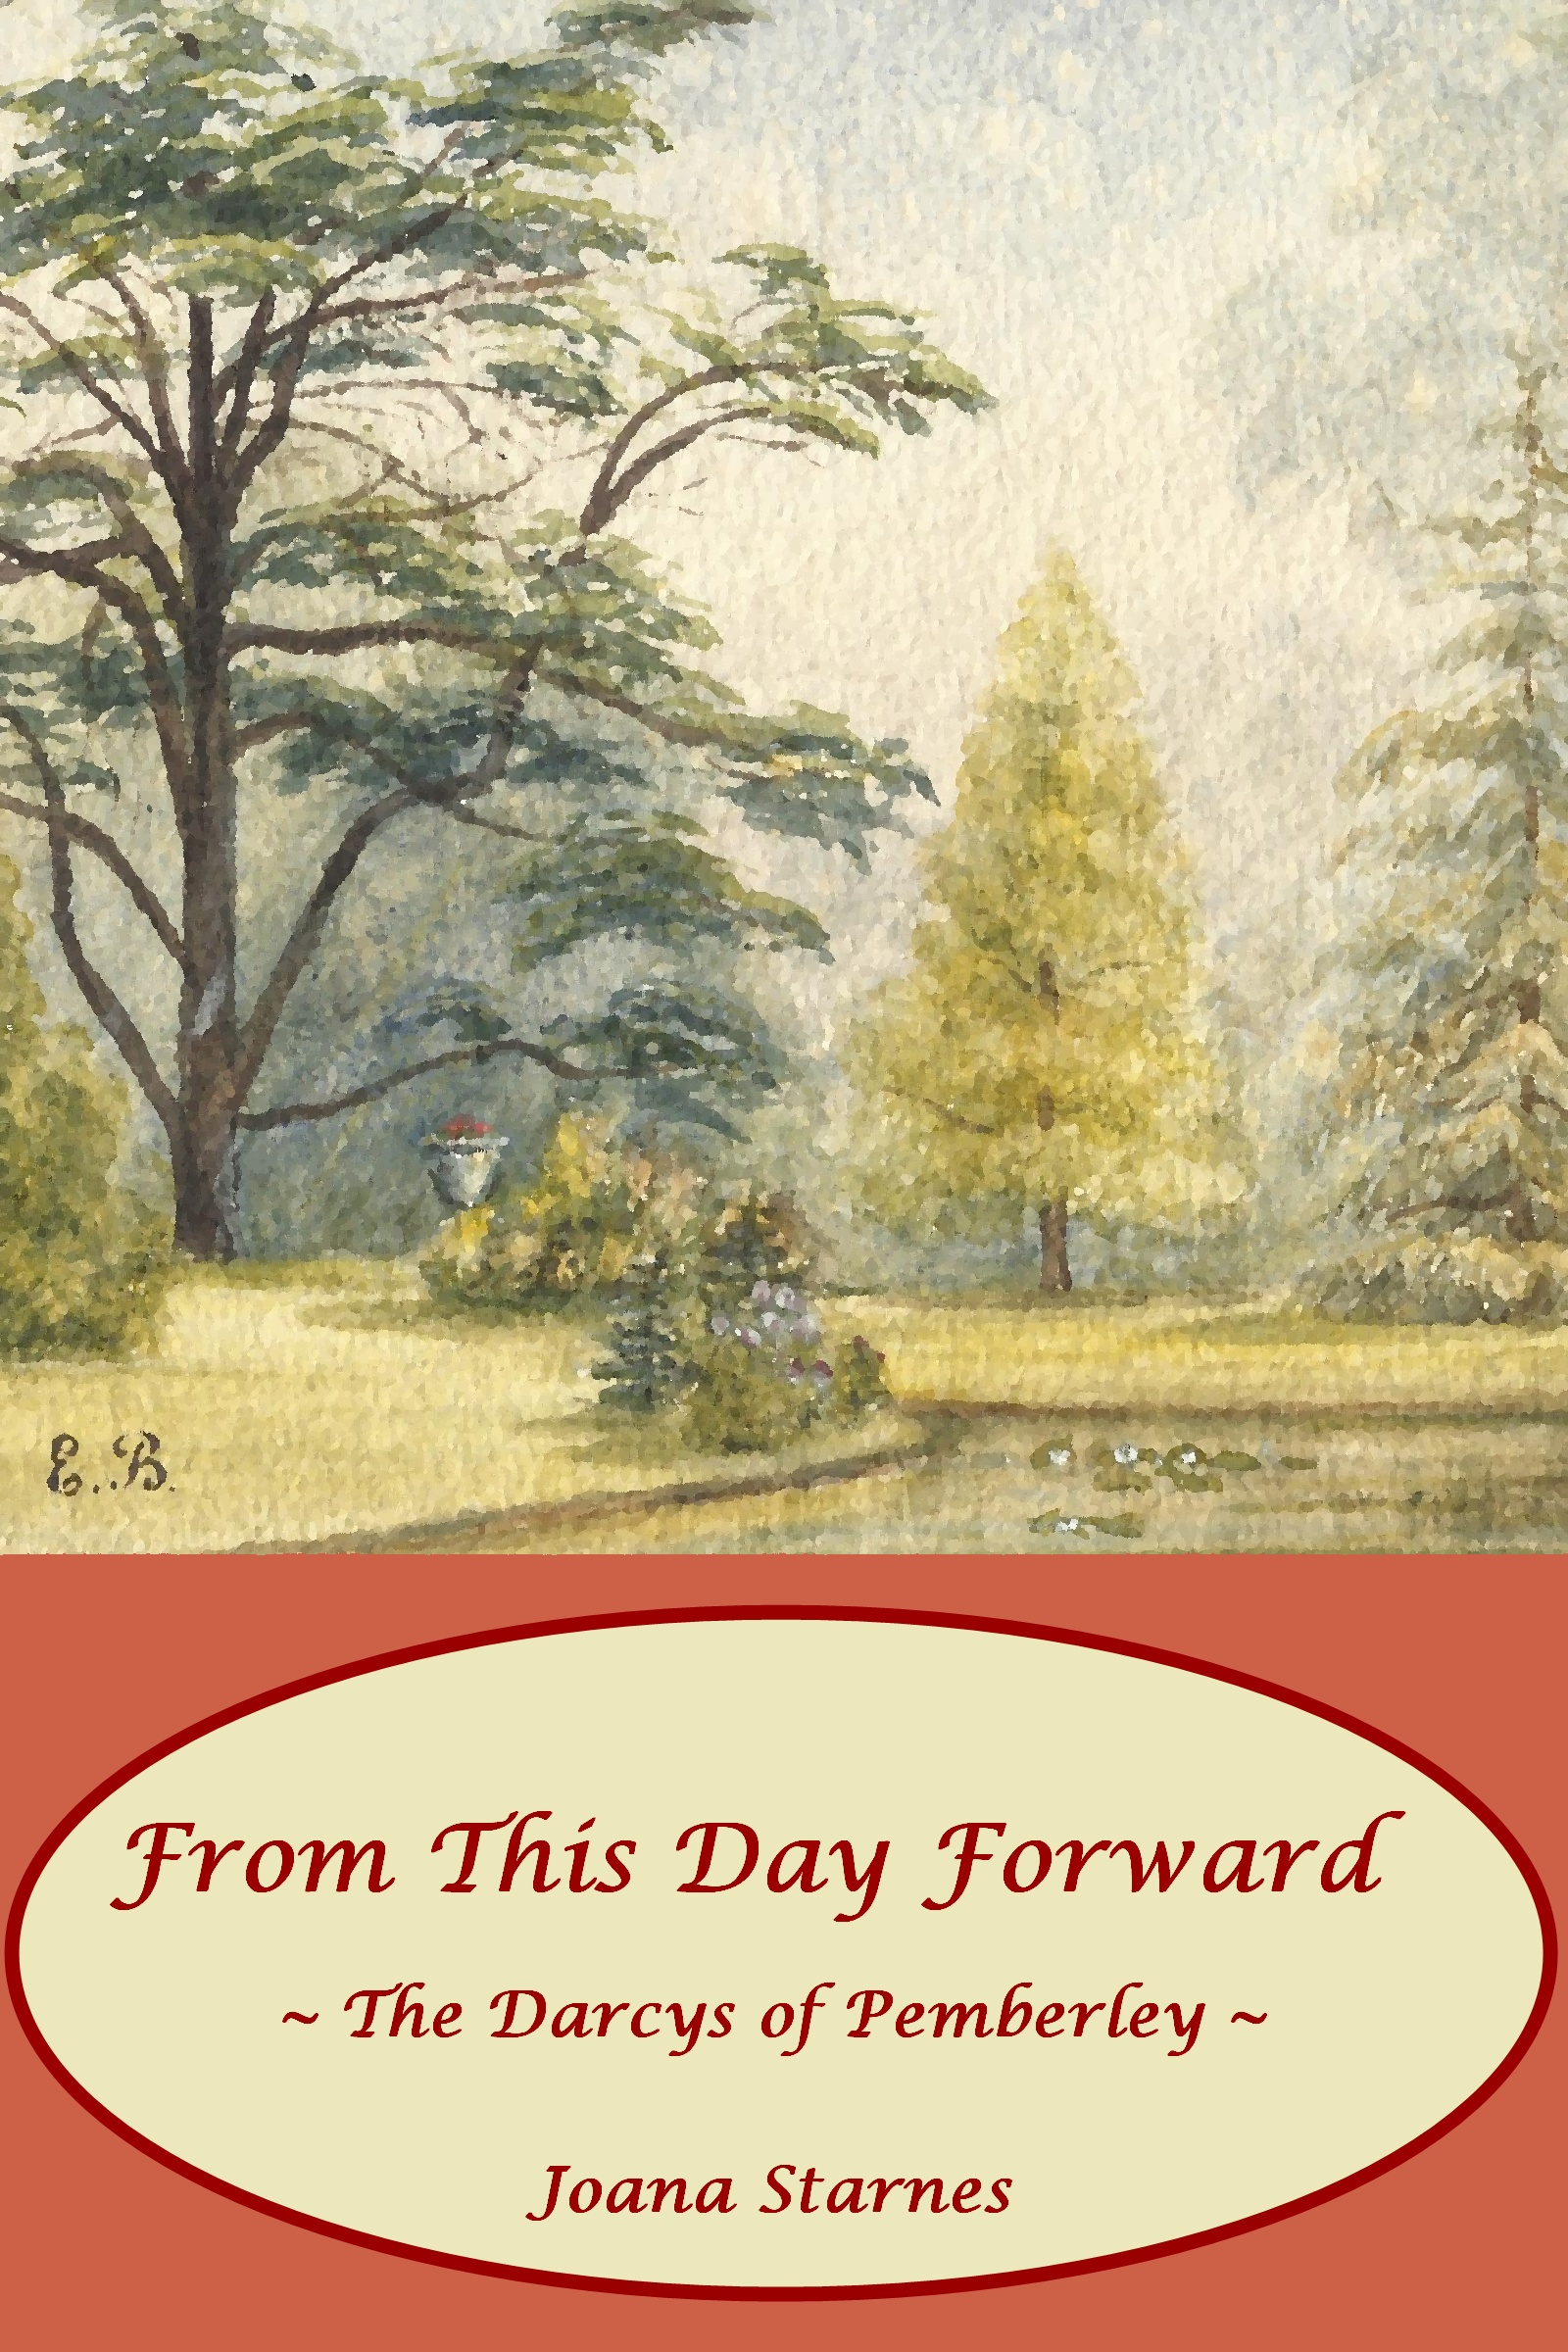 Joana Starnes - From This Day Forward ~ The Darcys of Pemberley